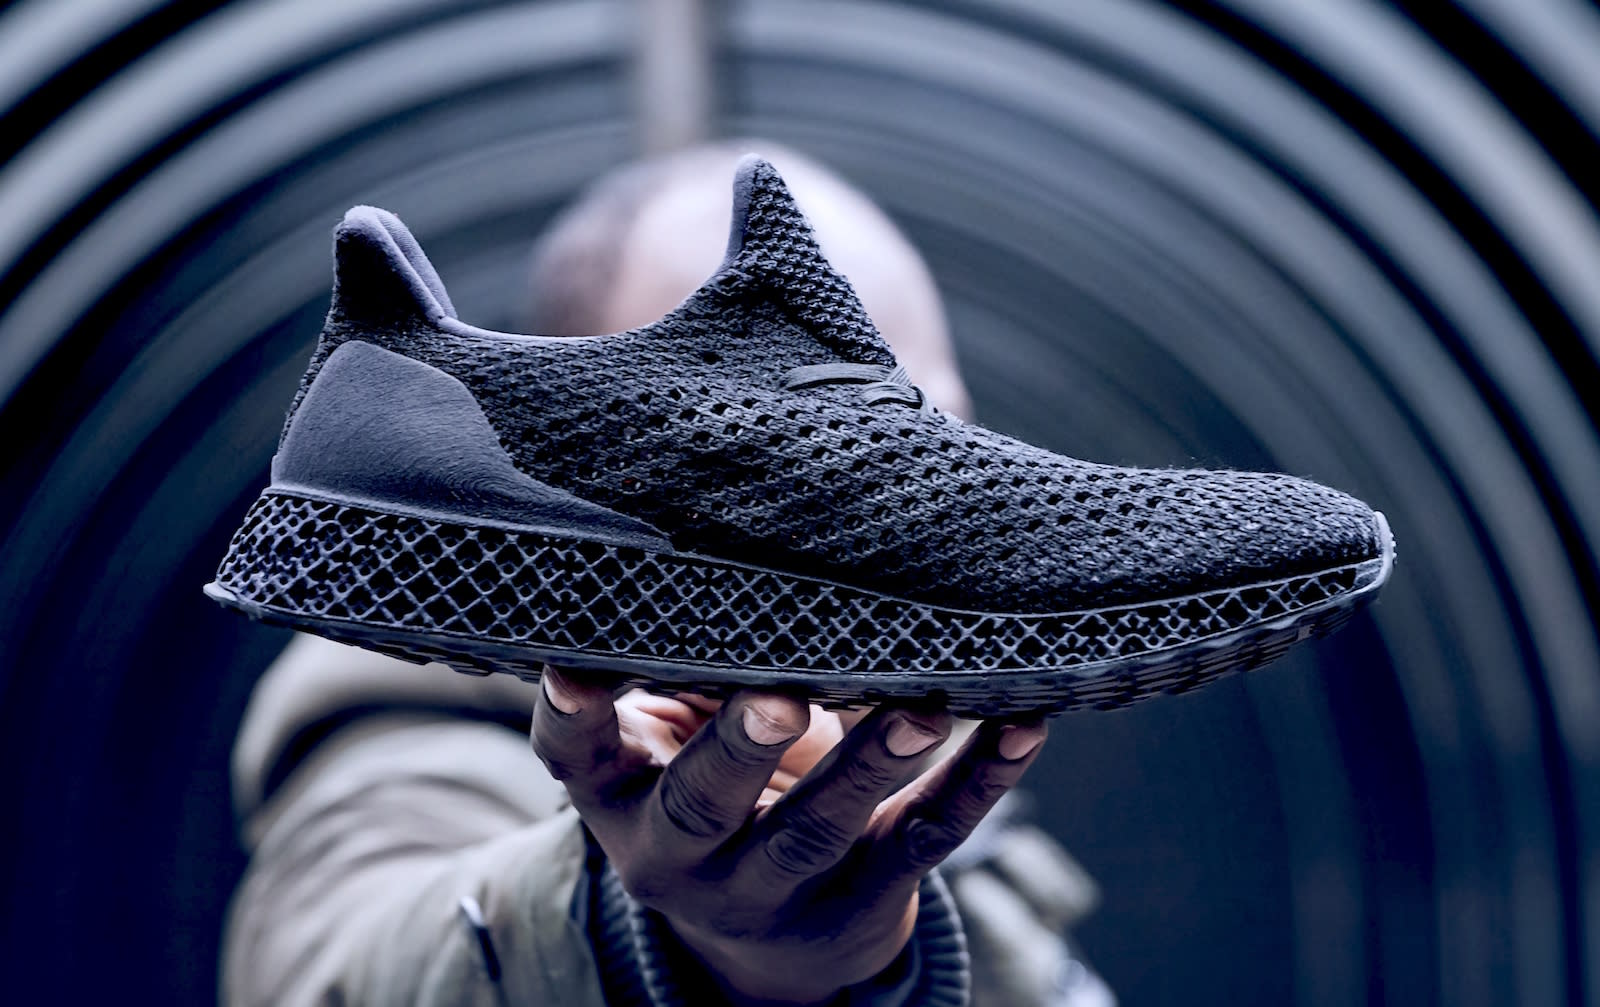 Adidas' latest 3D-printed running shoe will cost you $333